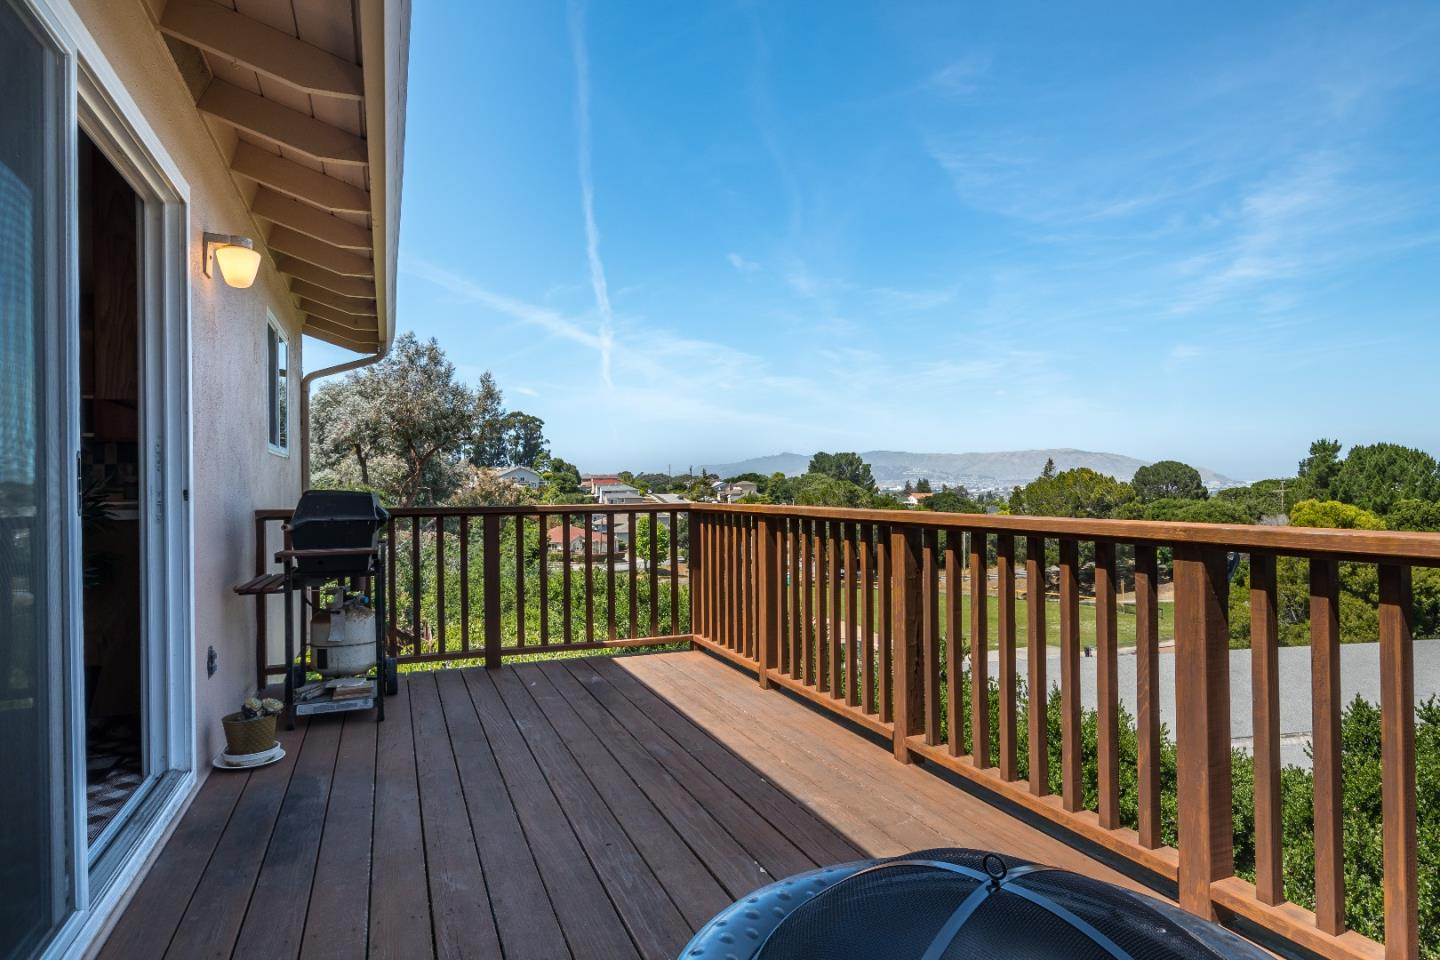 Additional photo for property listing at 22 Bertocchi Ln  MILLBRAE, CALIFORNIA 94030